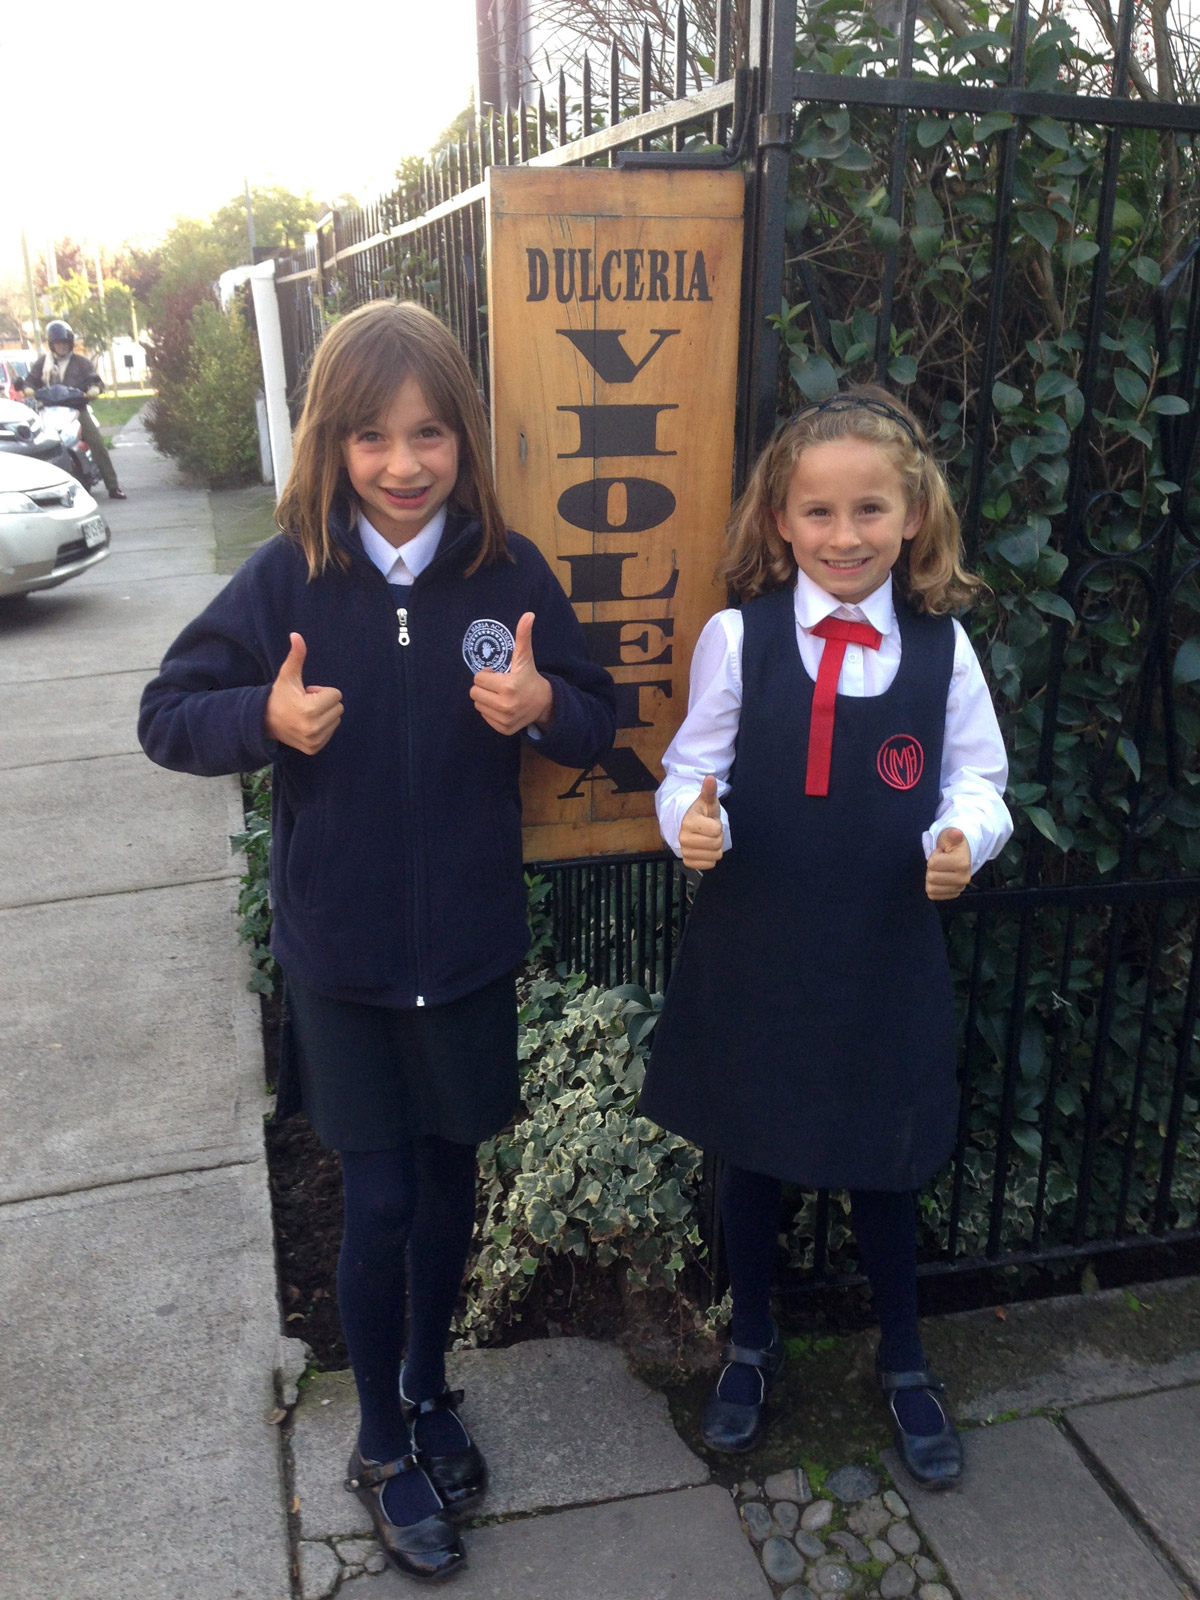 Our kids give Dulcería la Violeta two thumbs up!